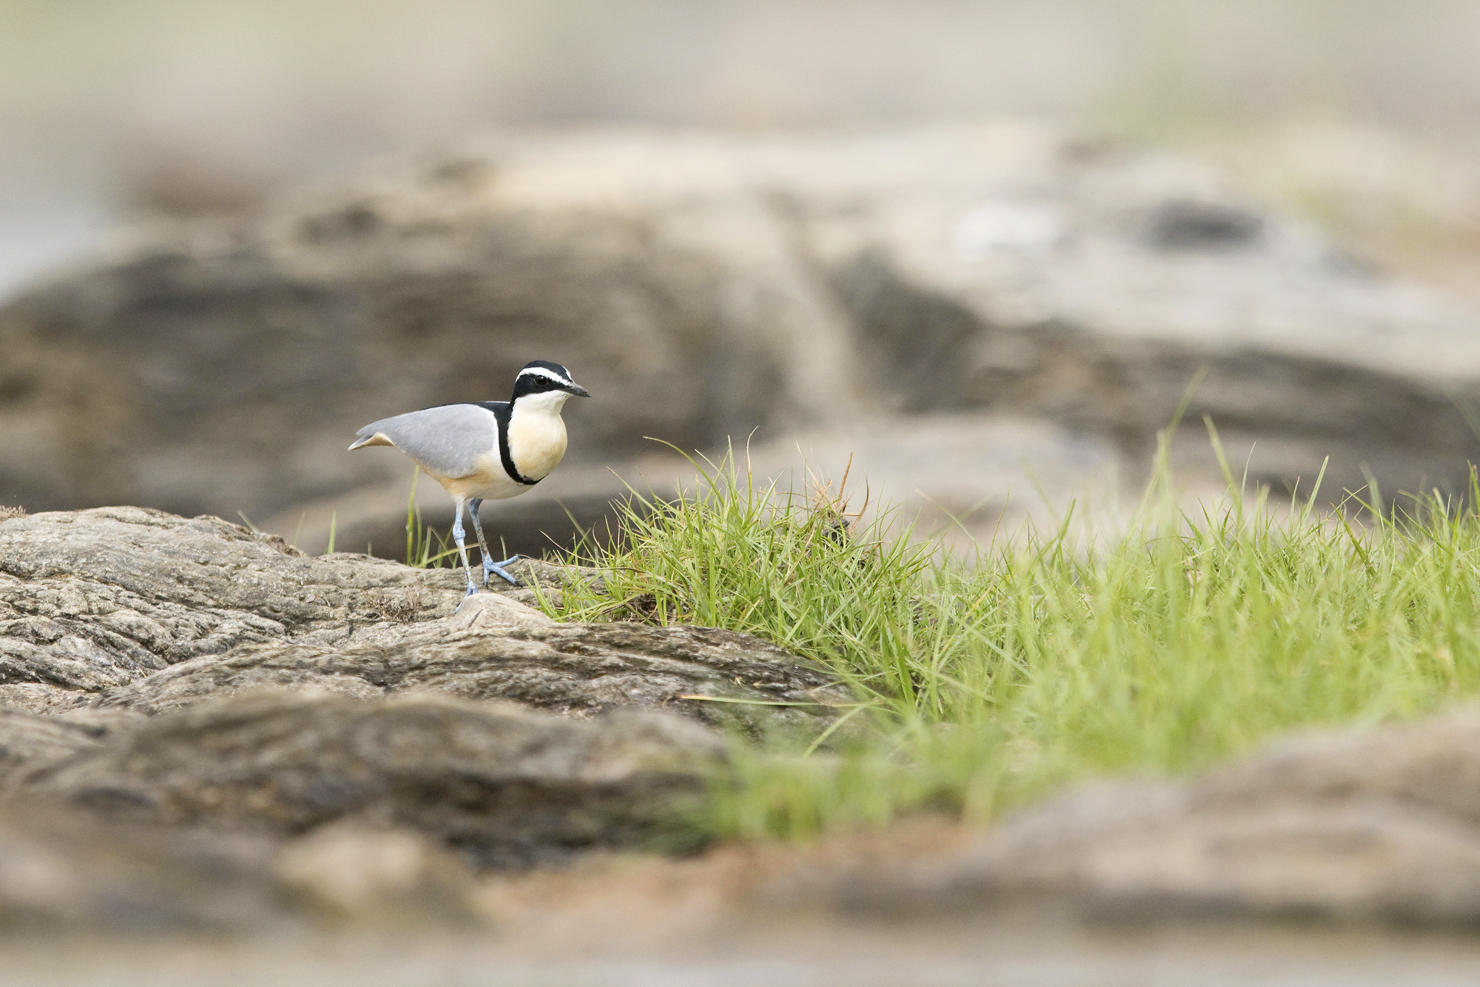 An Egyptian Plover stands alert on the banks of the Benoue River in Cameroon.